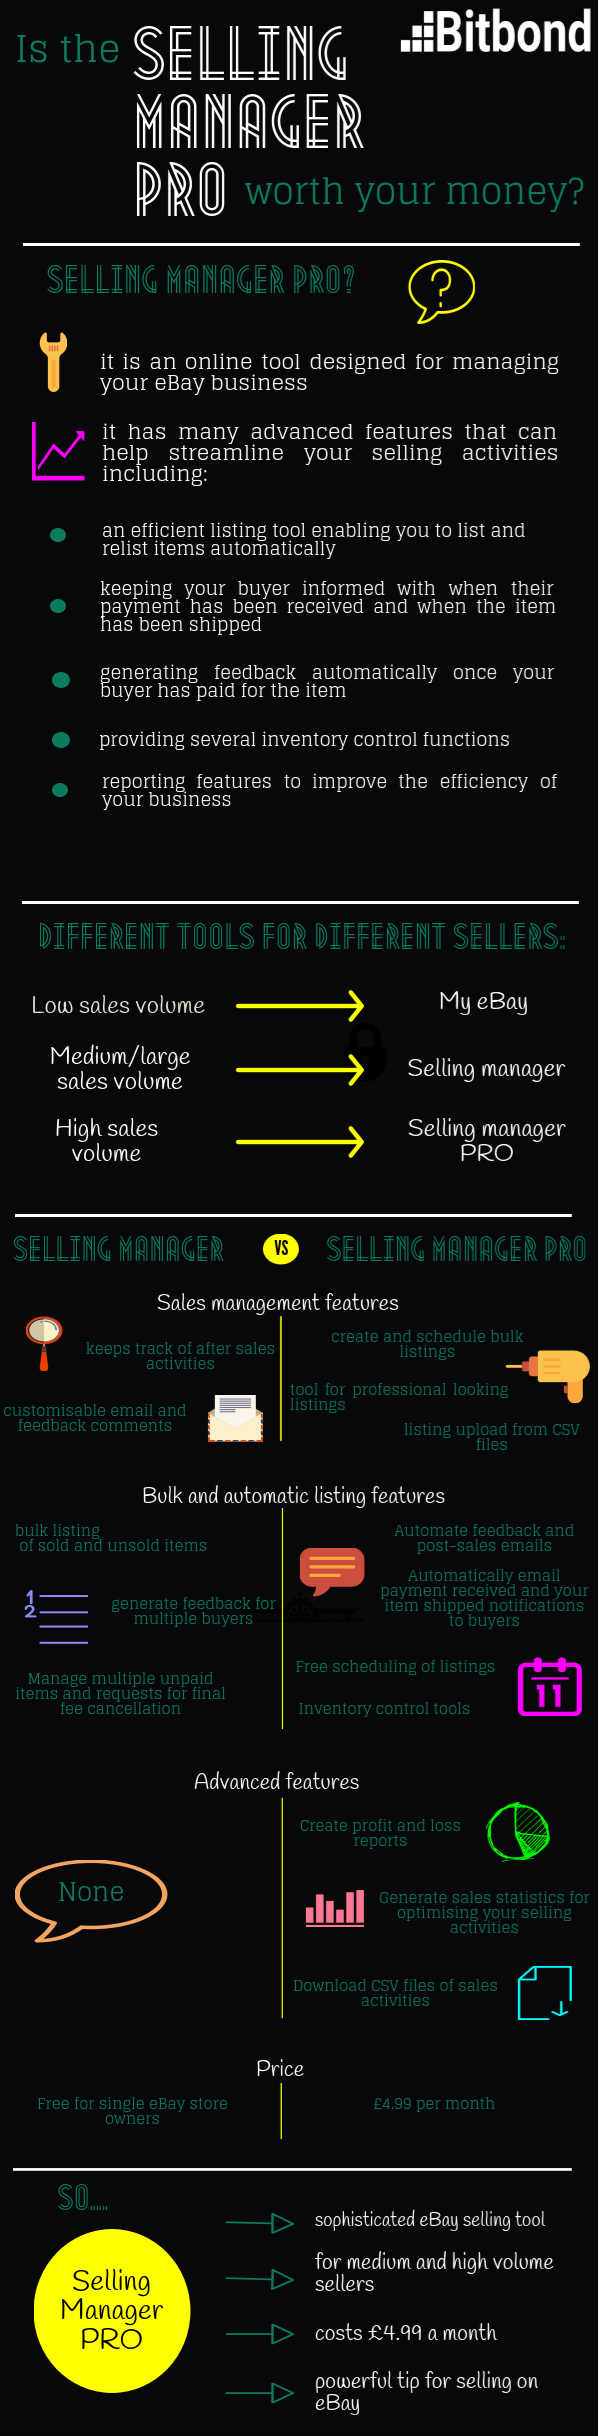 Selling Manager Pro Worth Your Money